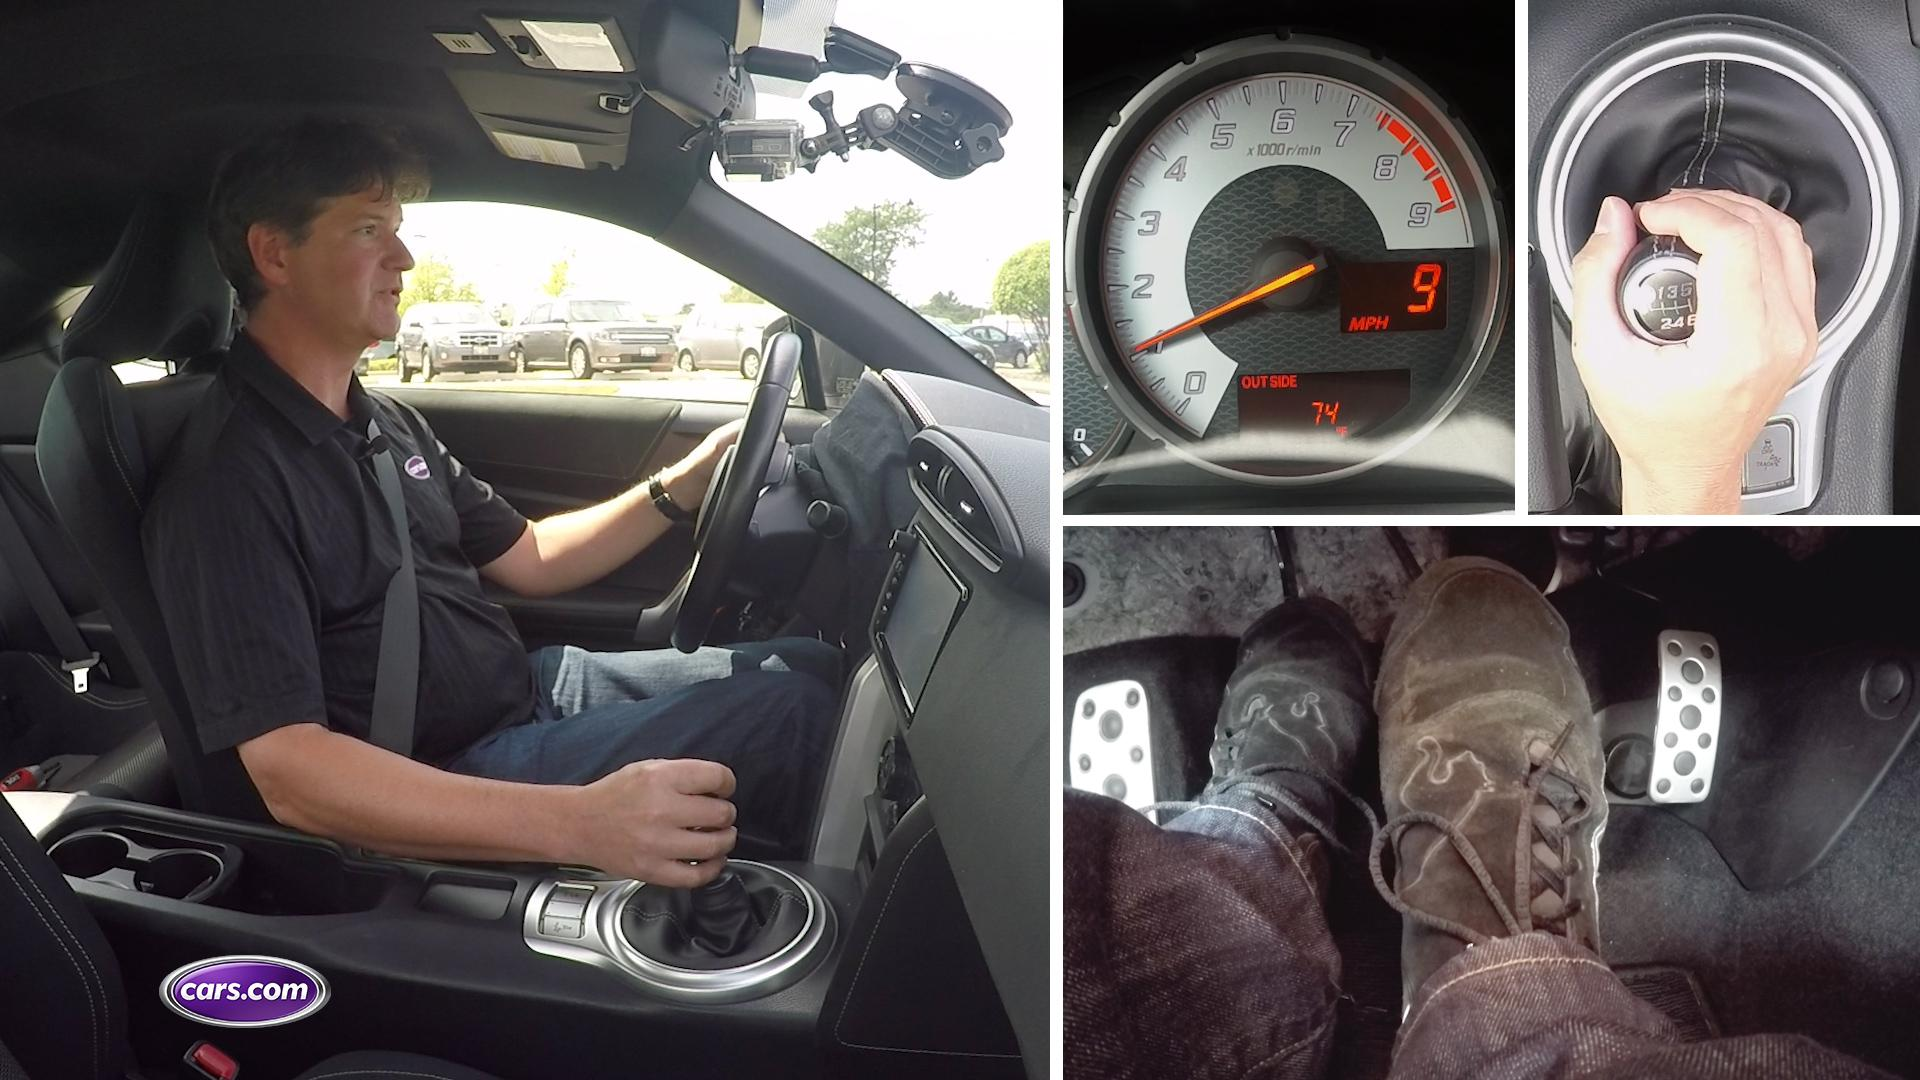 Video: How to Drive a Manual Transmission